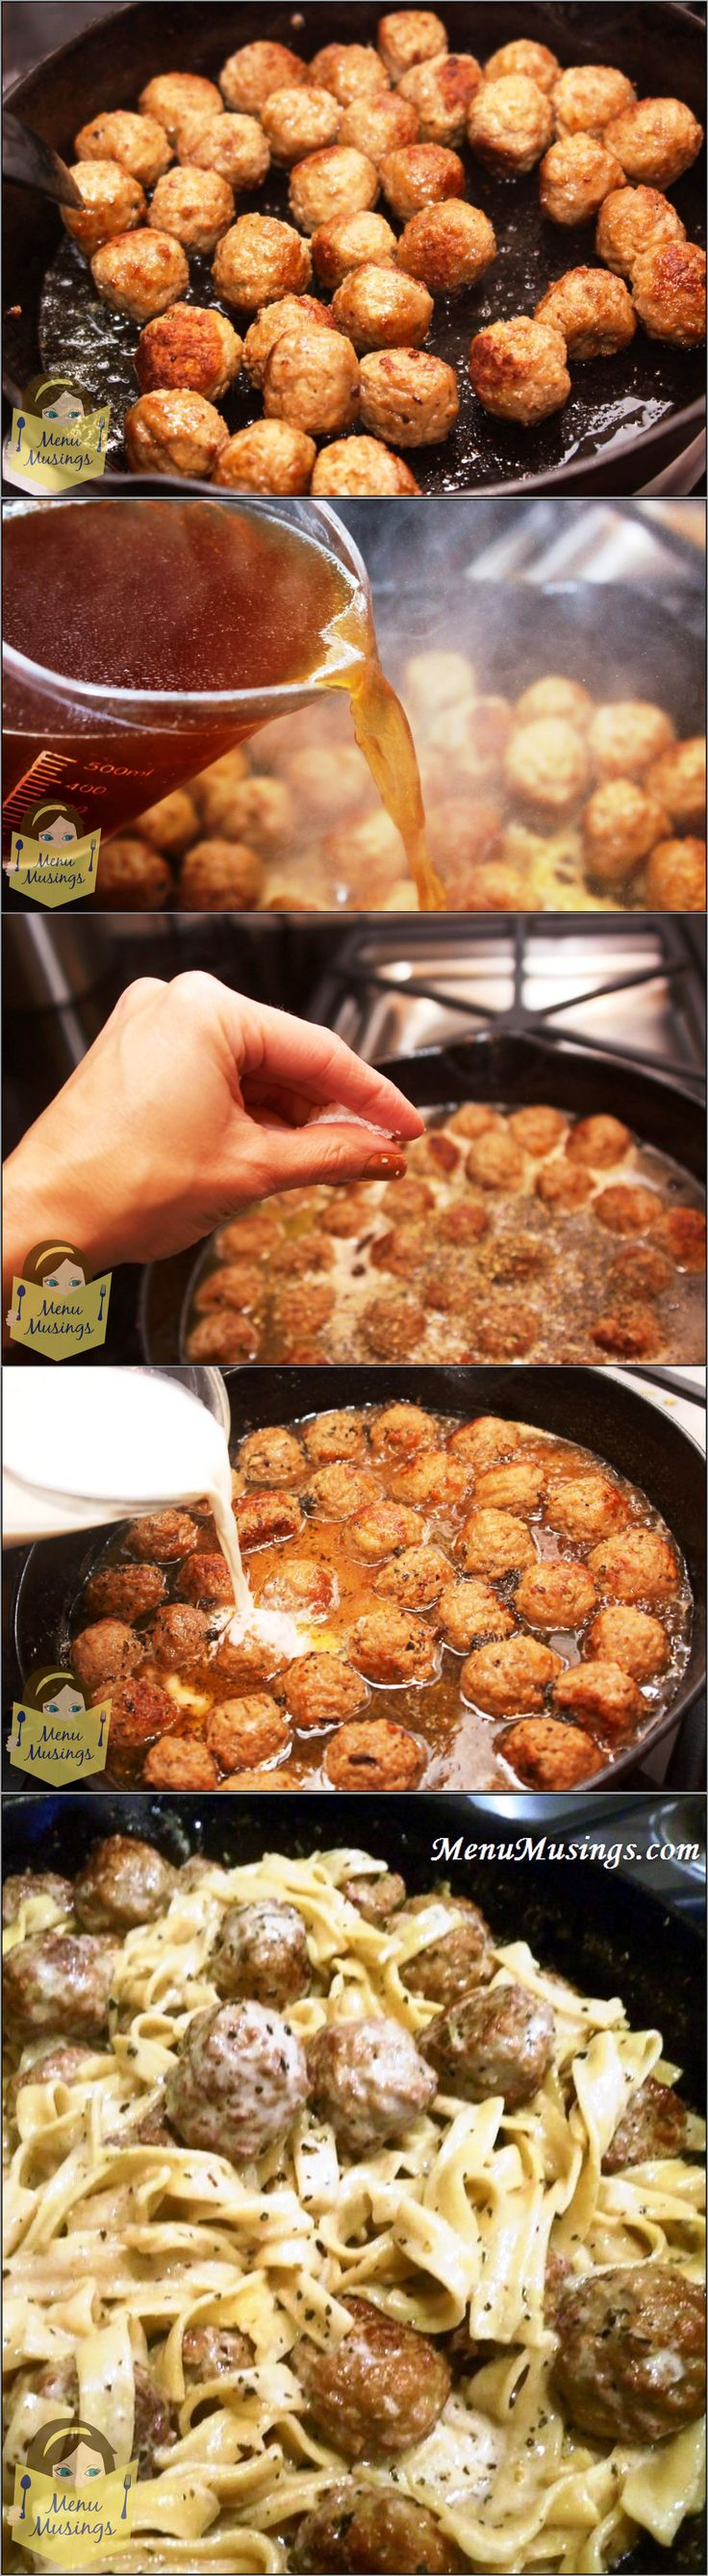 Meatballs Stroganoff - It's one of those things you throw together after work on a busy day because it works and its delicious and your kids love it, and its super fast. Step-by-step photos. --- You can do it with tomato sauce ----